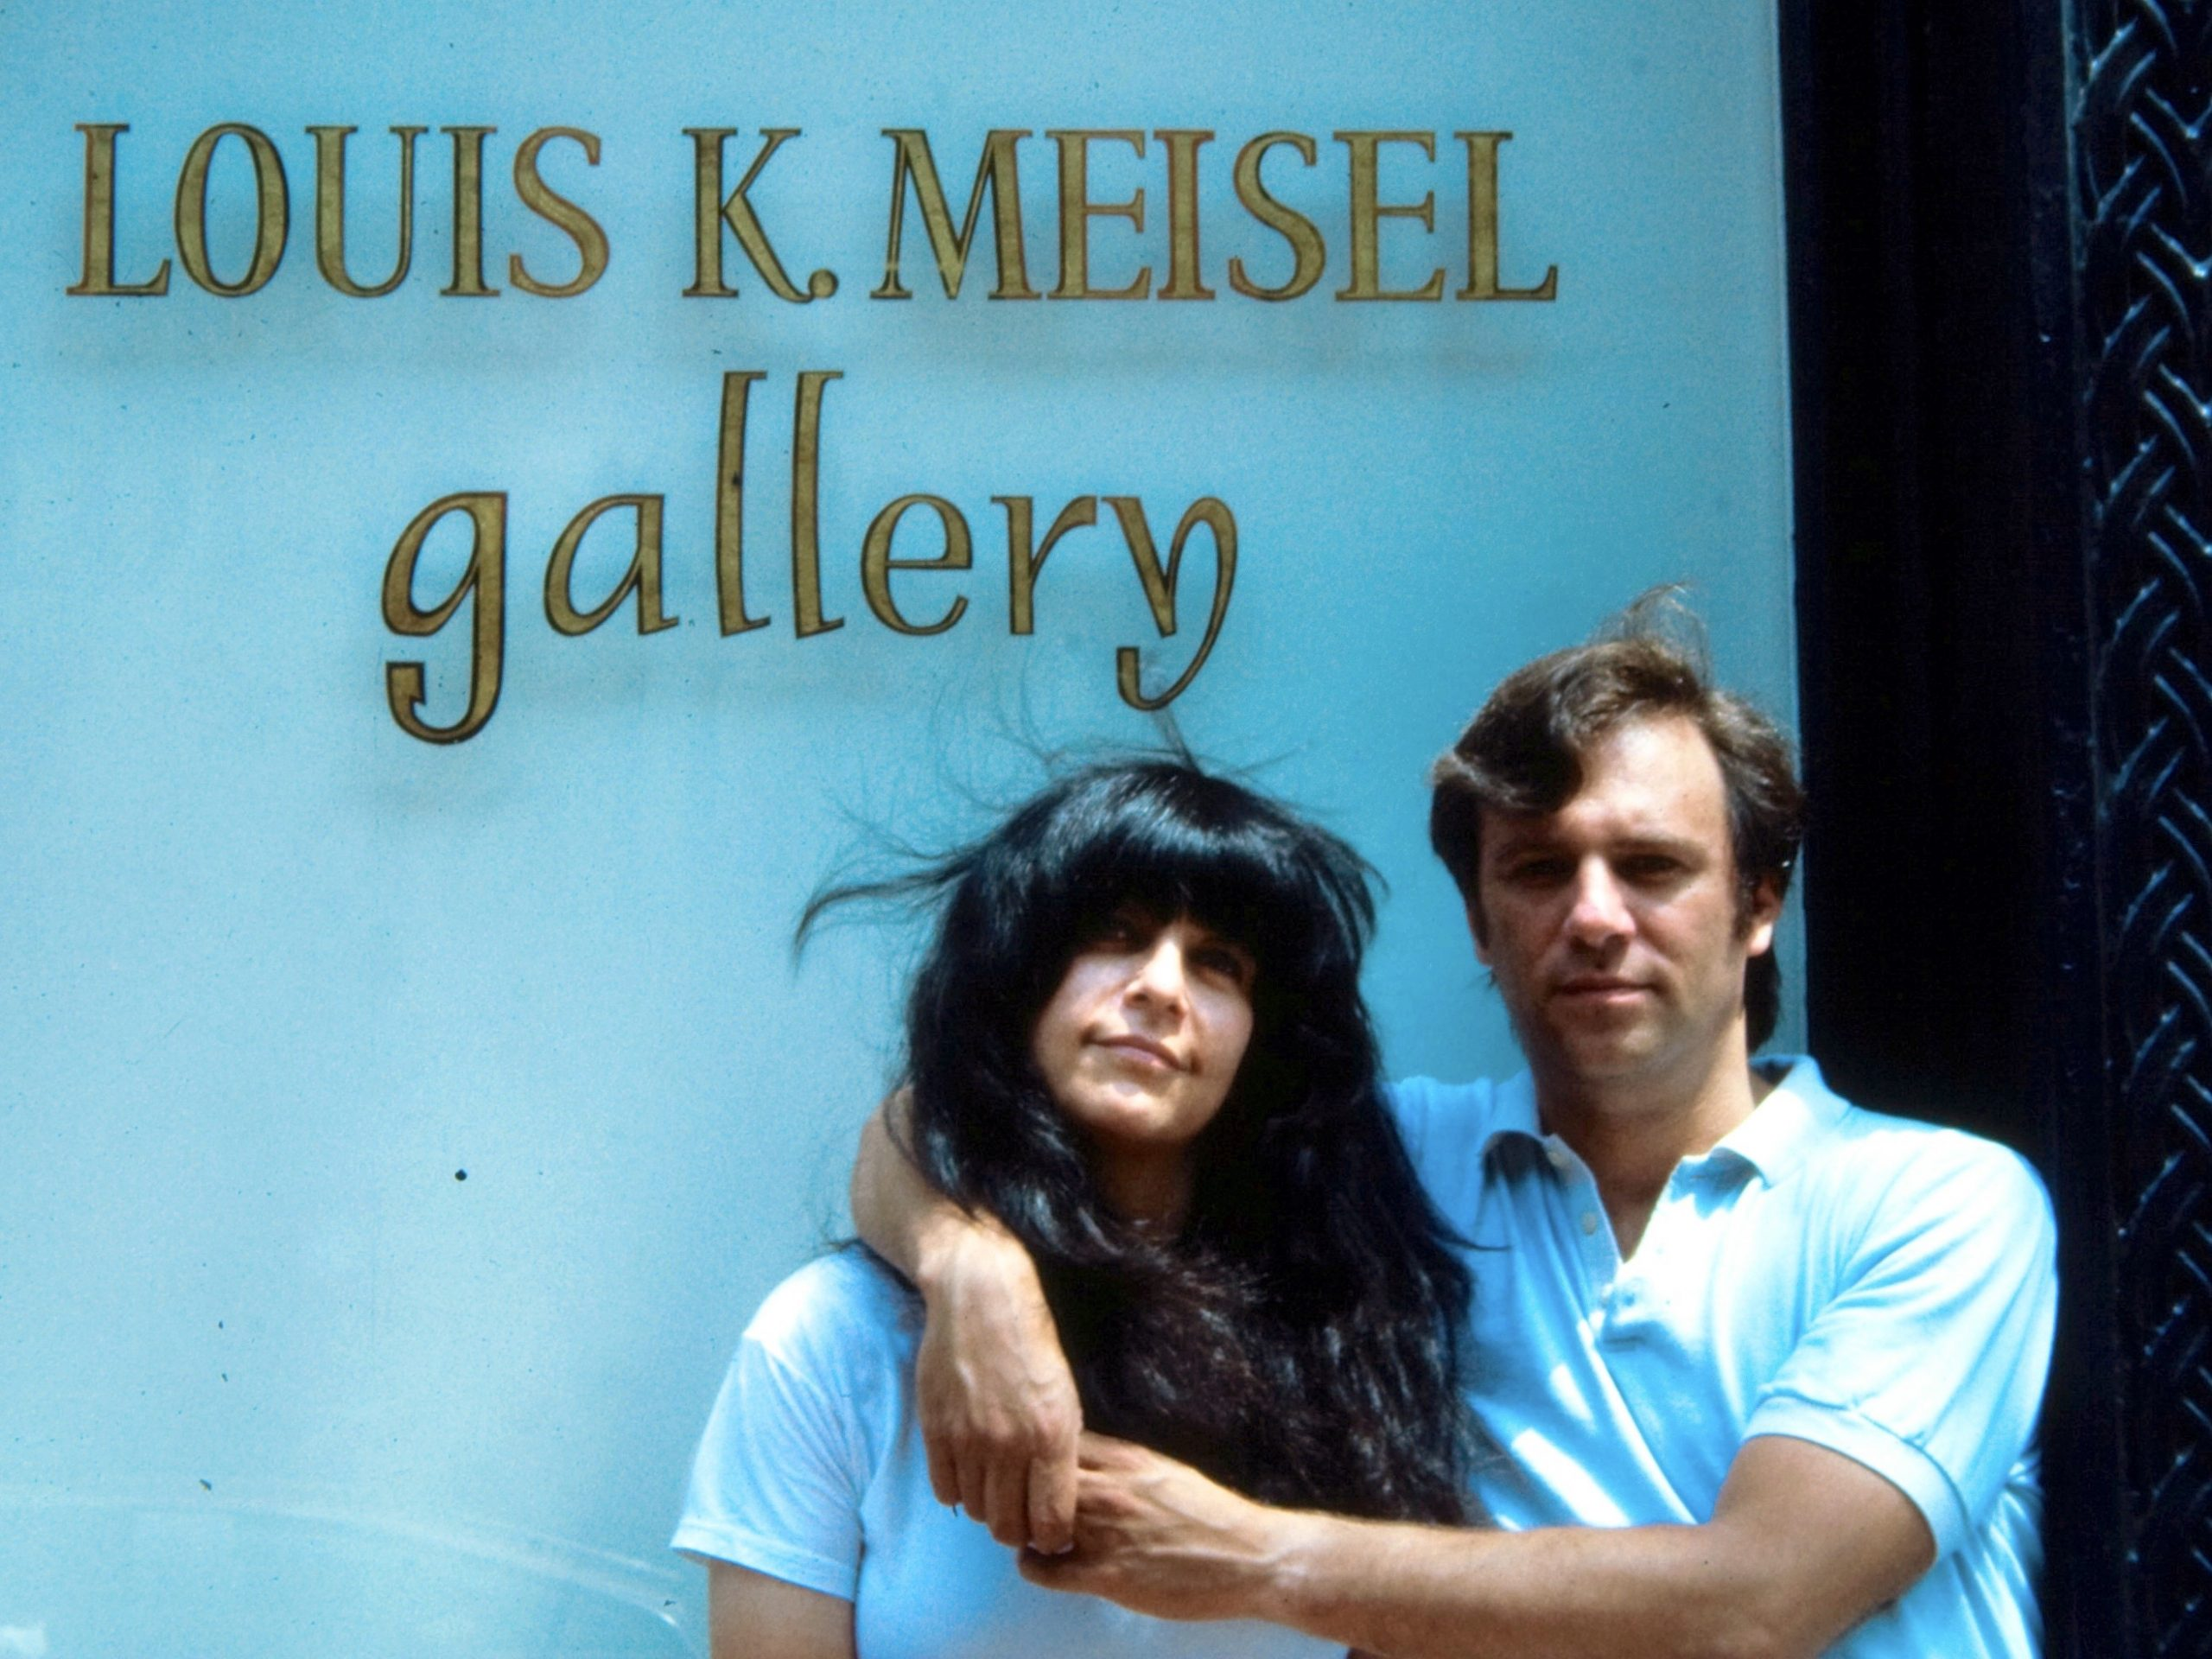 Picture of Louis & Susan outside the gallery at 141 Prince Street, SoHo – Late 1970's